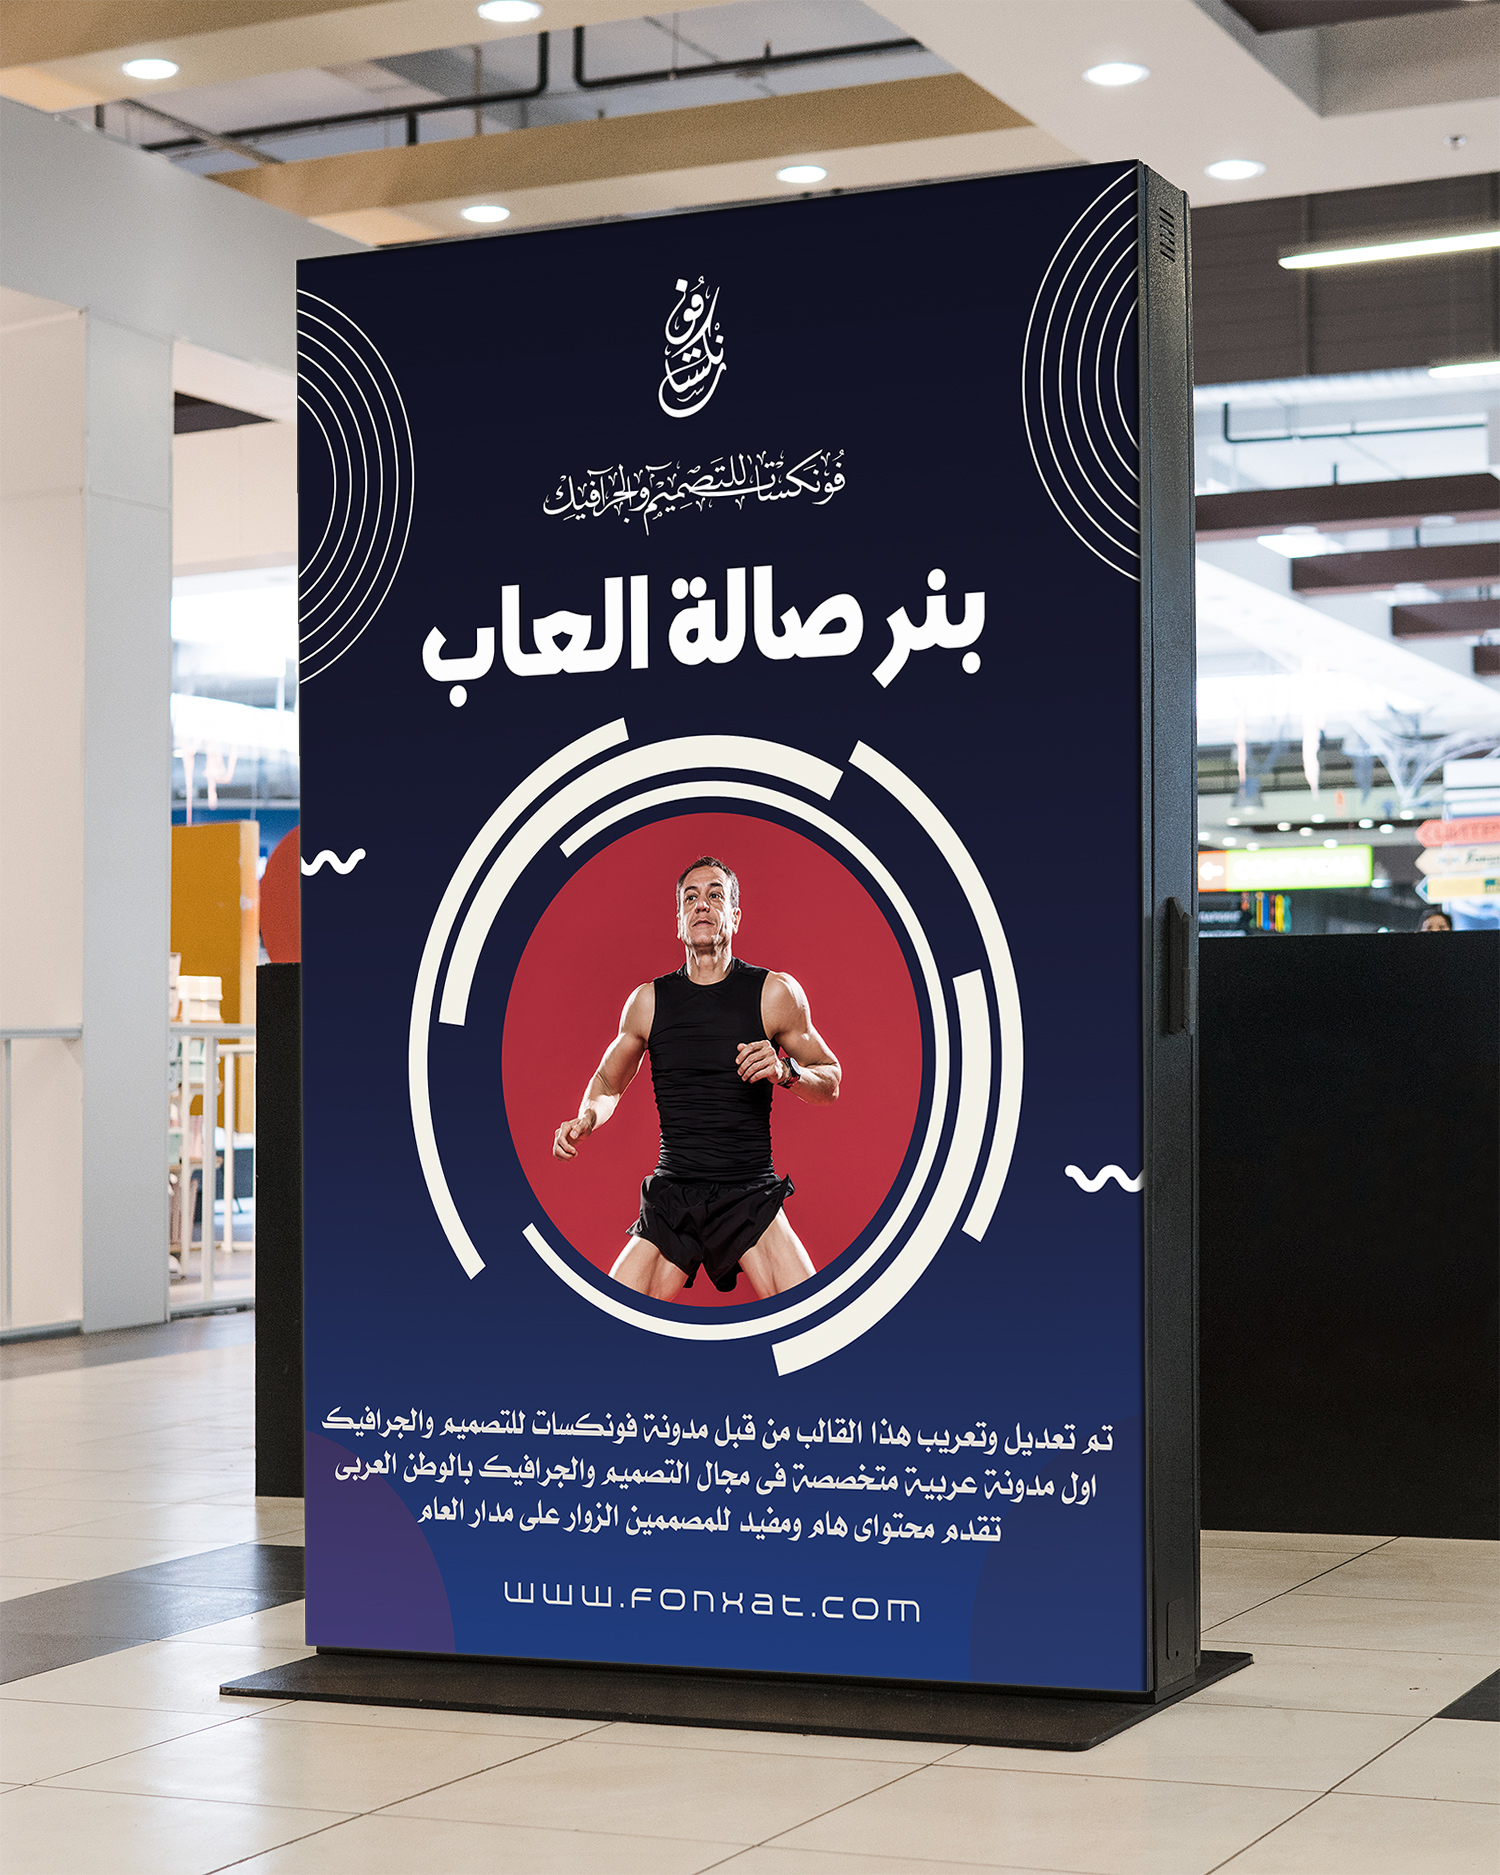 Download print banners in size 120 cm by 80 cm download for free